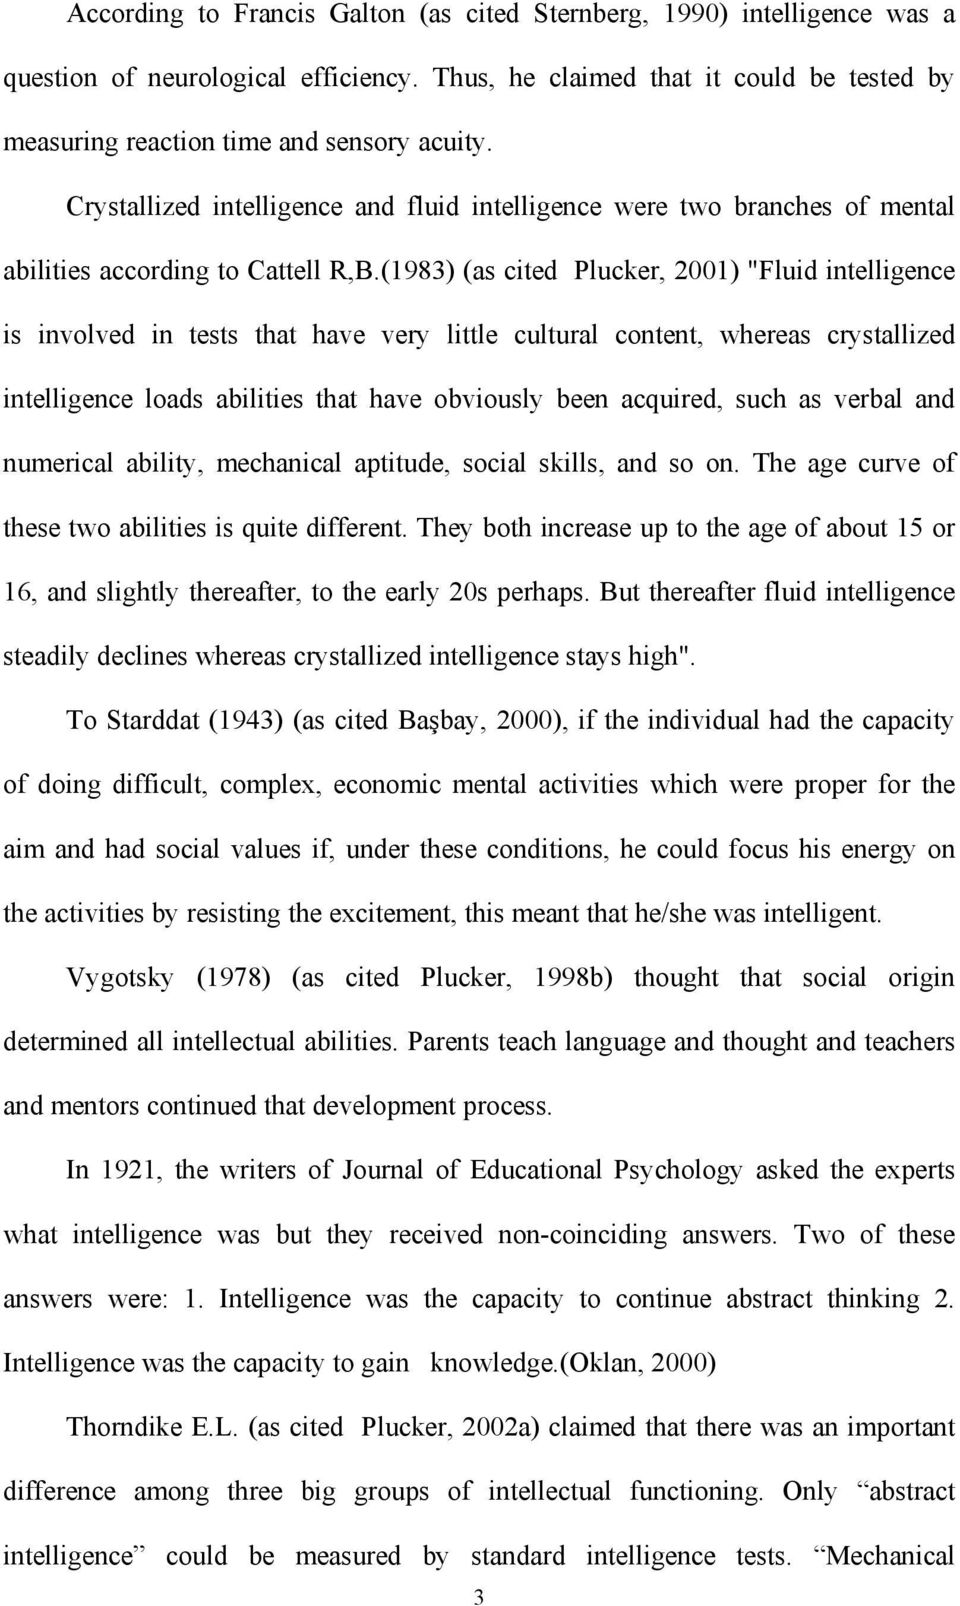 "(1983) (as cited Plucker, 2001) ""Fluid intelligence is involved in tests that have very little cultural content, whereas crystallized intelligence loads abilities that have obviously been acquired,"